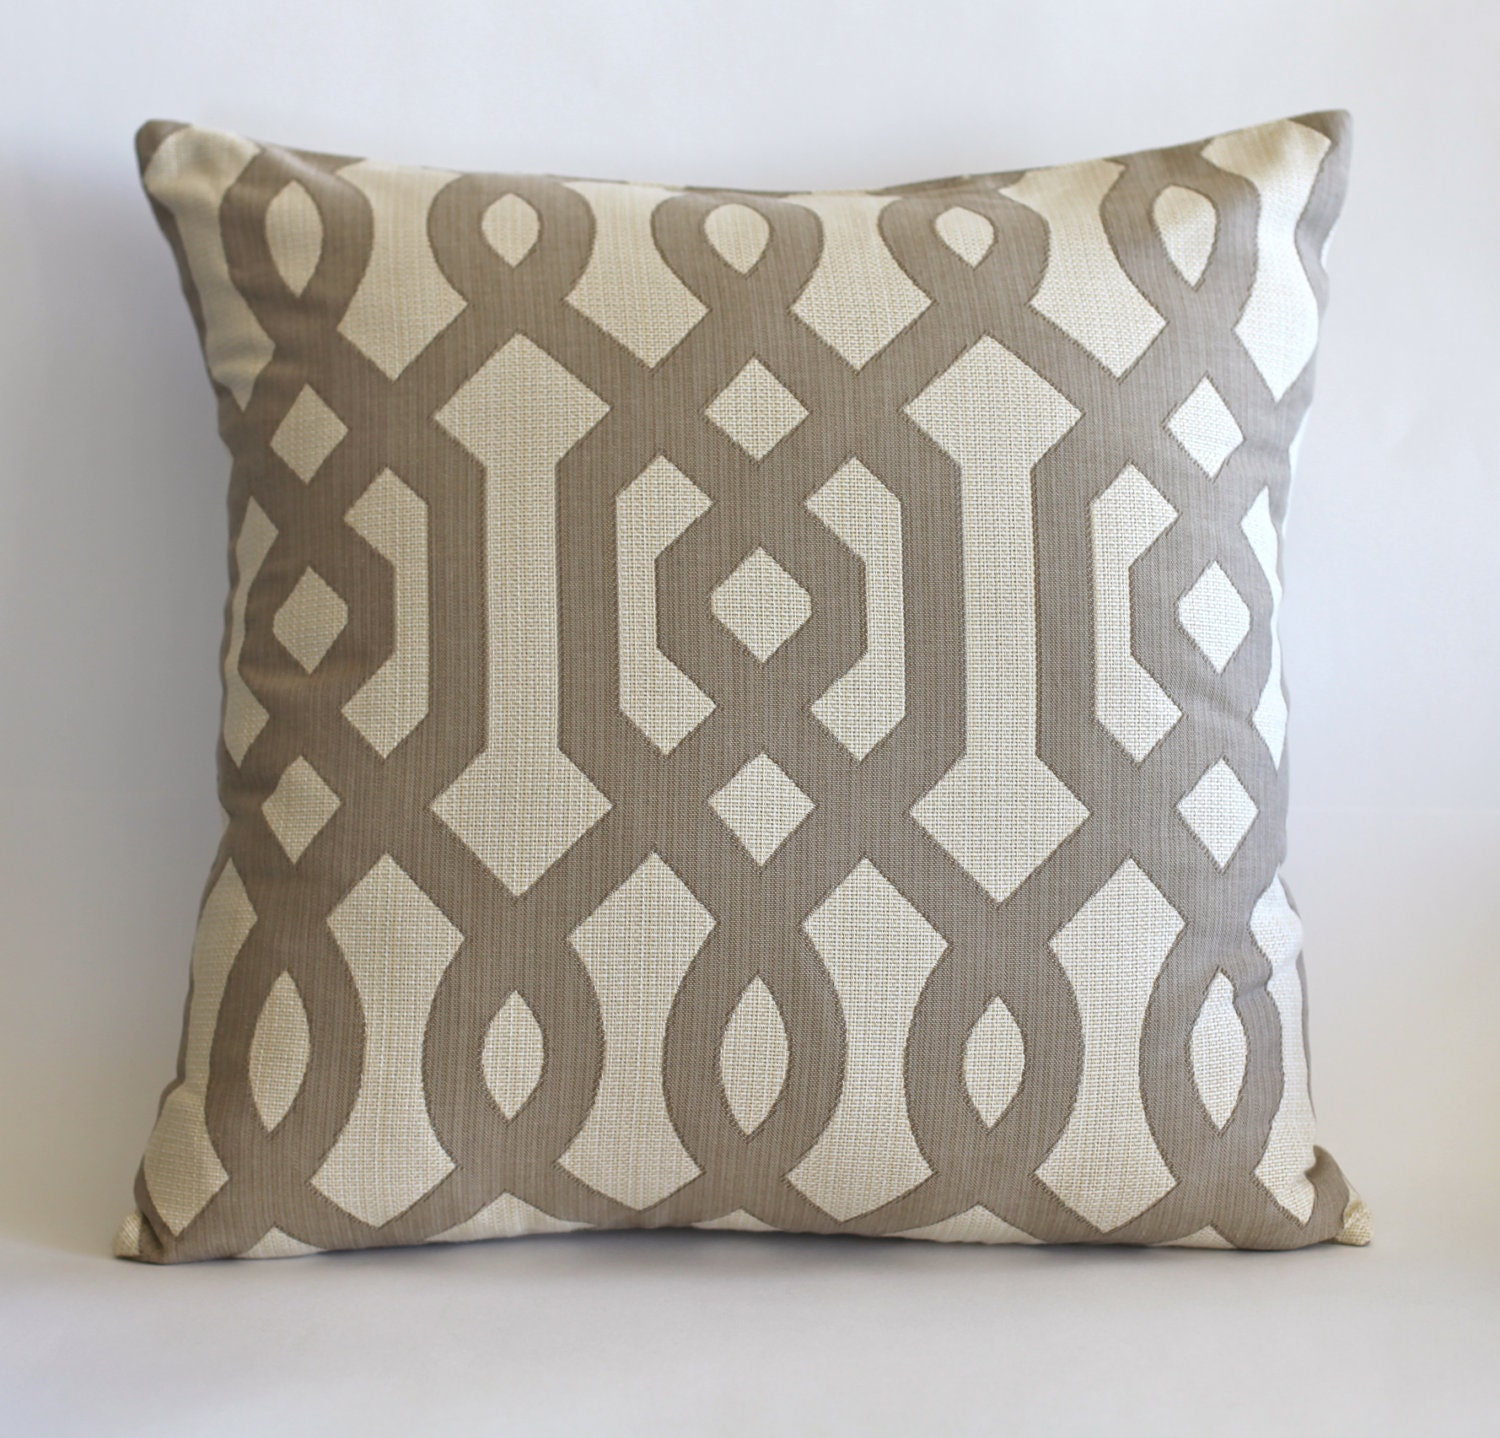 Throw Pillows Taupe : 20x20 lattice print design taupe and beige on luxurious linen